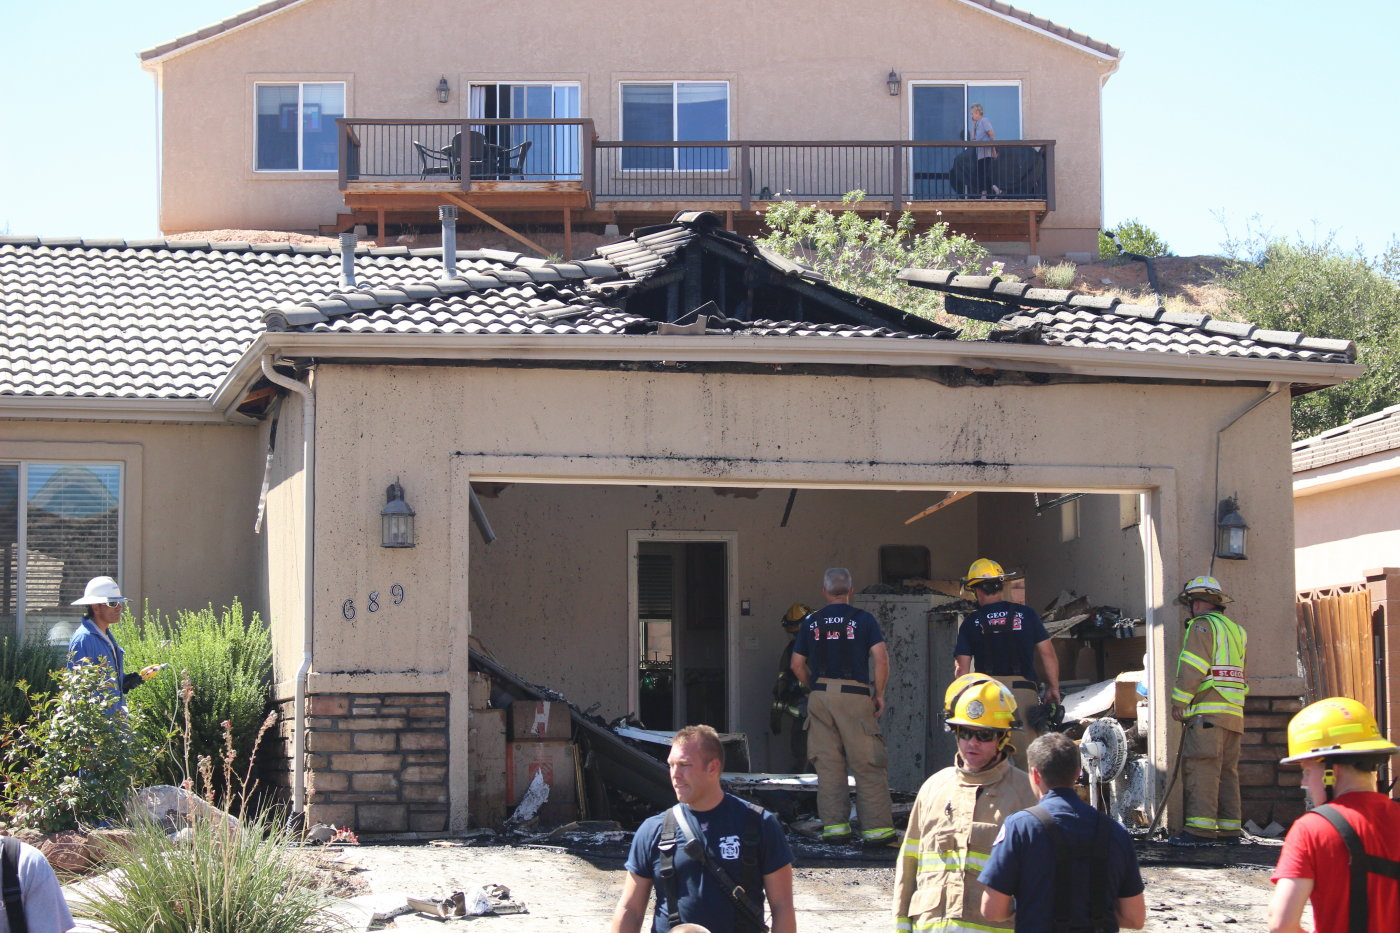 A St. George firefighter was injured when a garage door came down on him during a house fire on Lave Point Drive in St George, Utah, Sept. 19,2016 | Photo by Mori Kessler, St. George